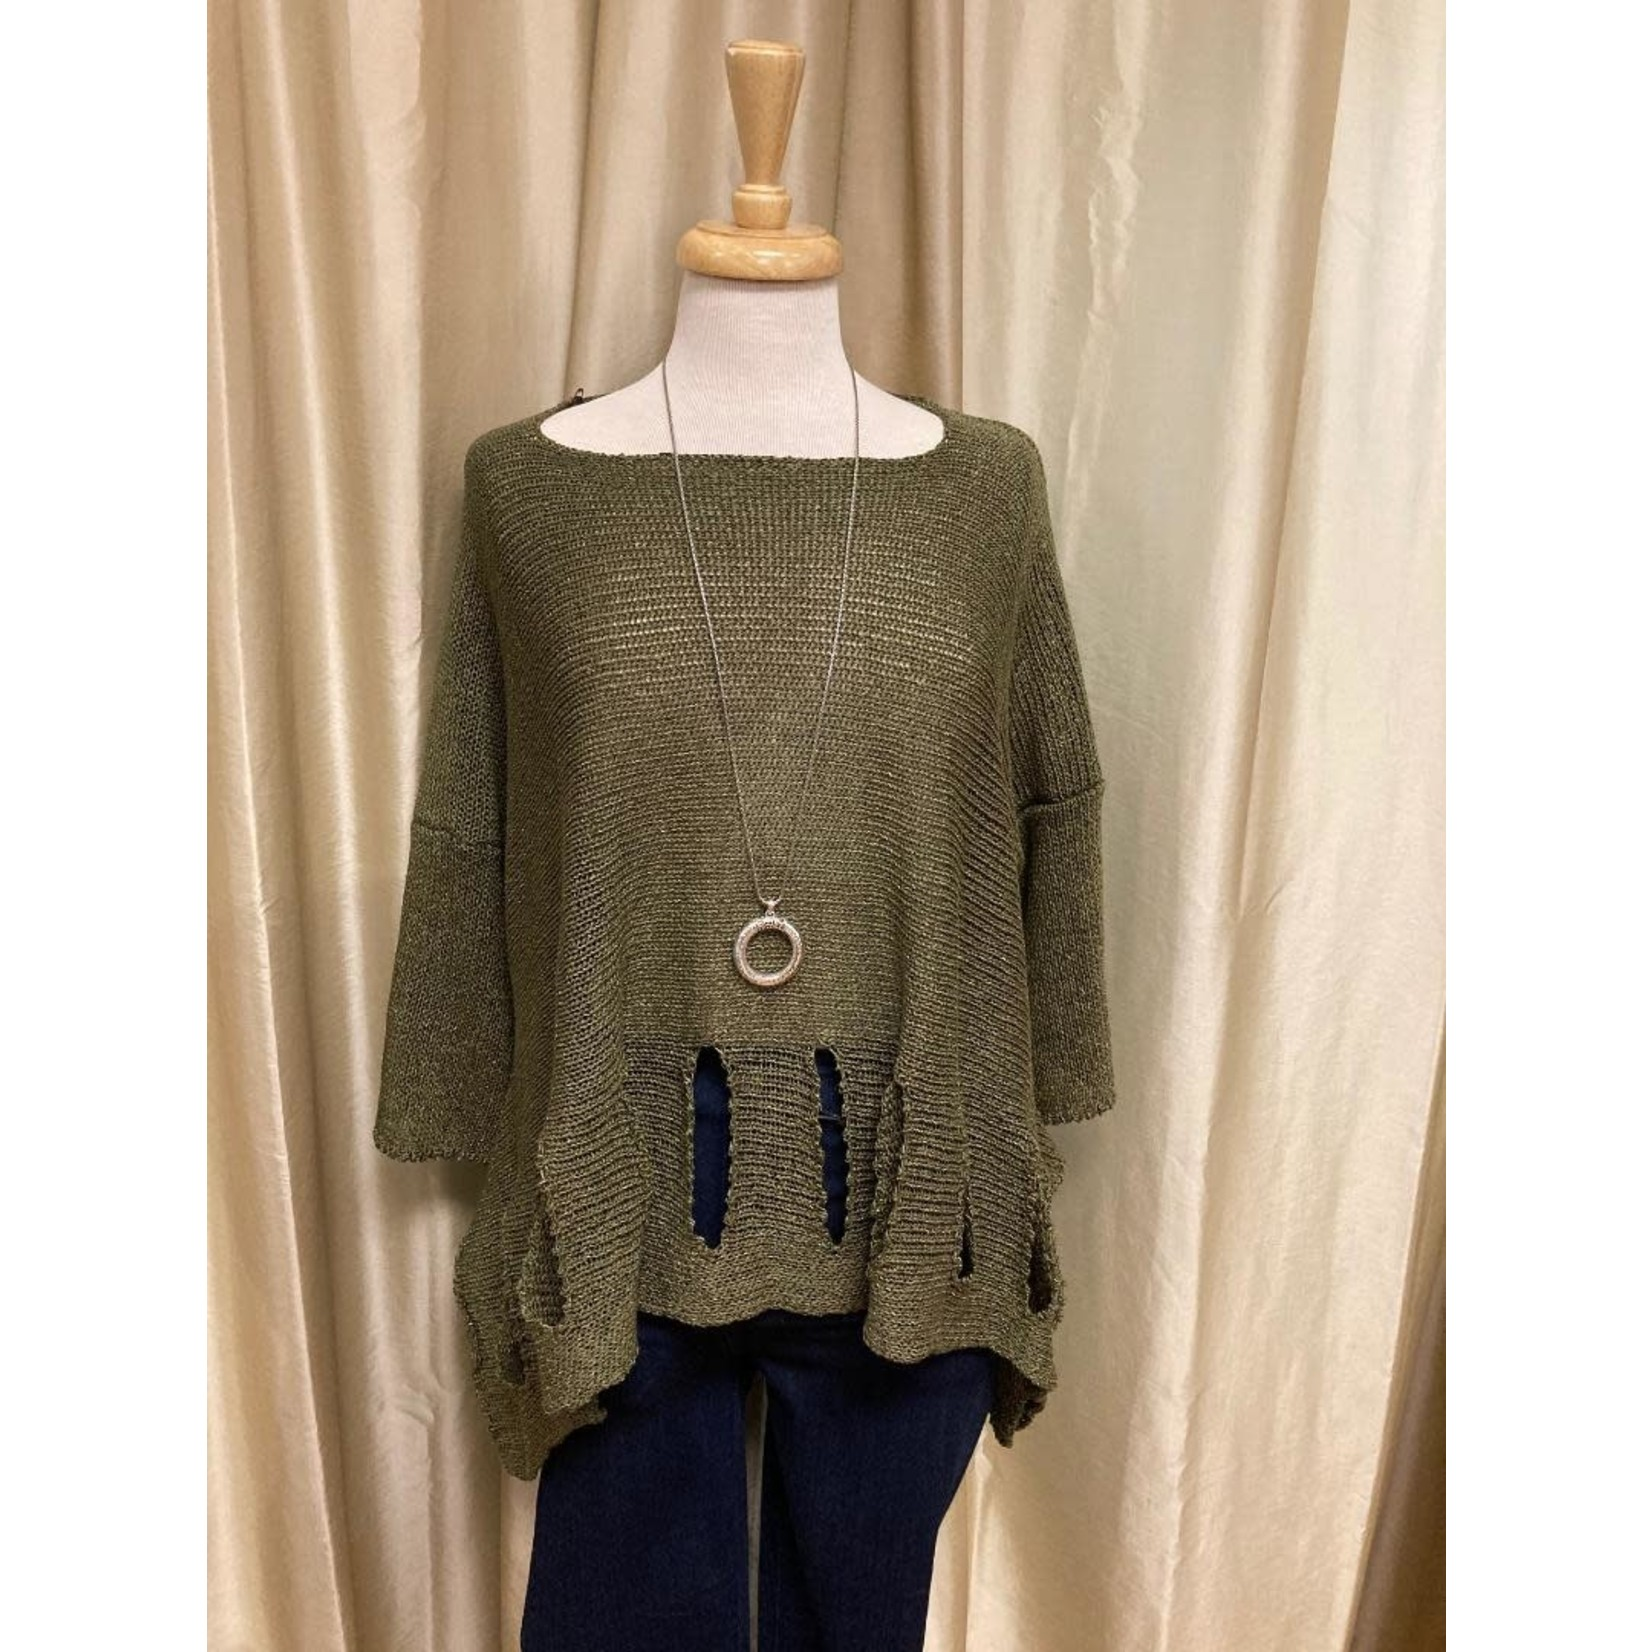 Holey Moley Sweater Fine Gauge  O/S Khaki